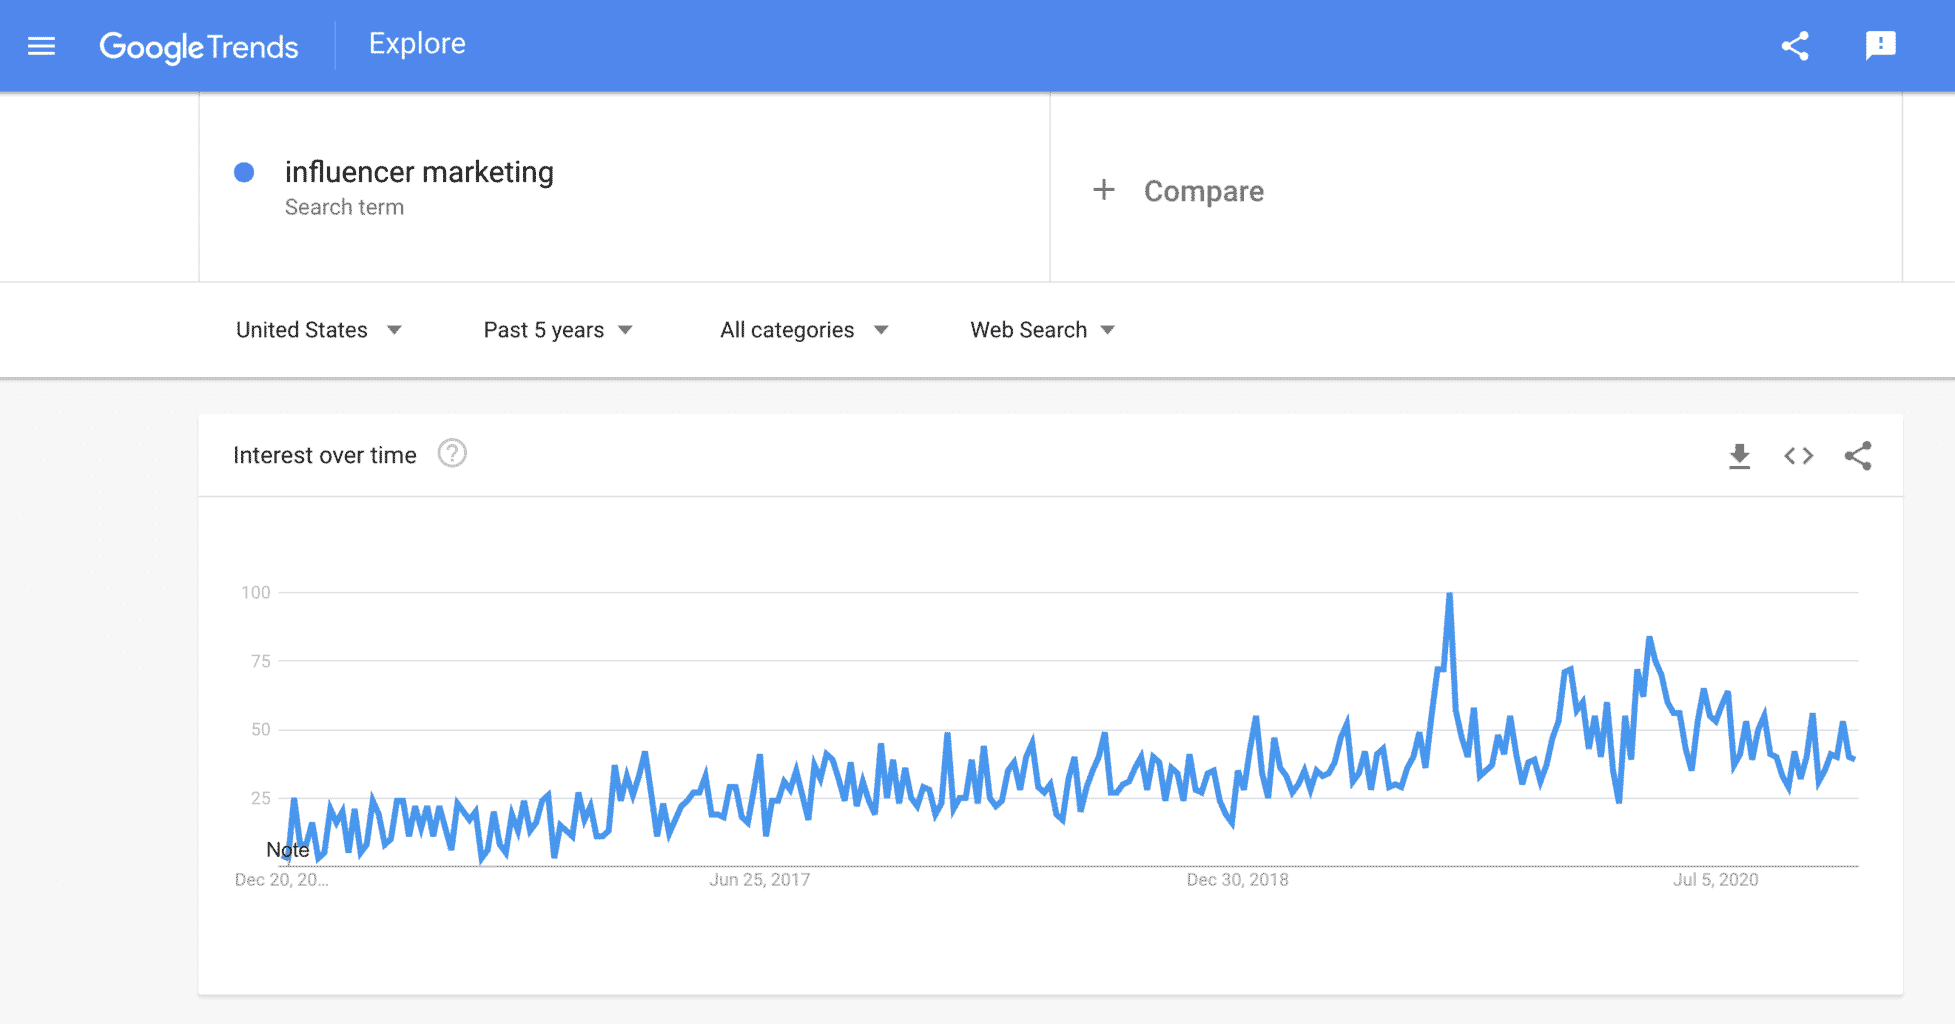 google trends 5 year influencer marketing trend